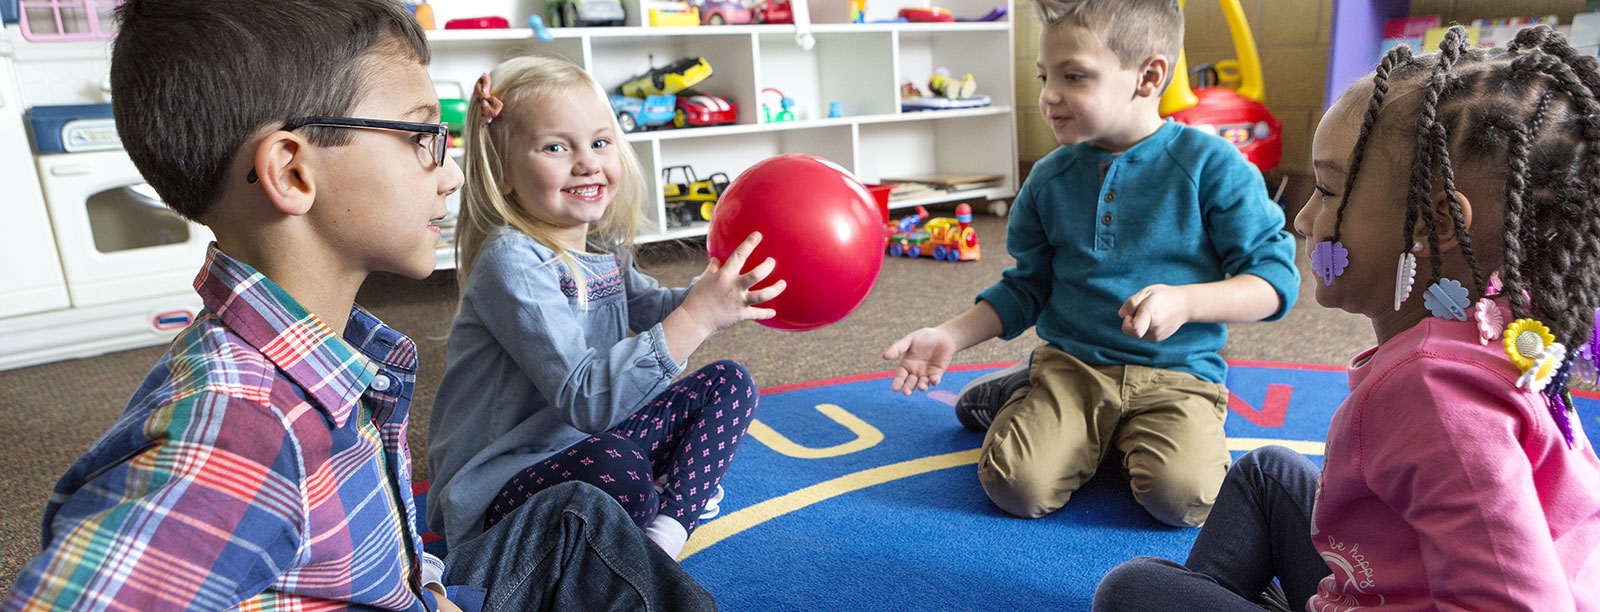 Children sitting on a classroom floor playing with a red bouncy ball